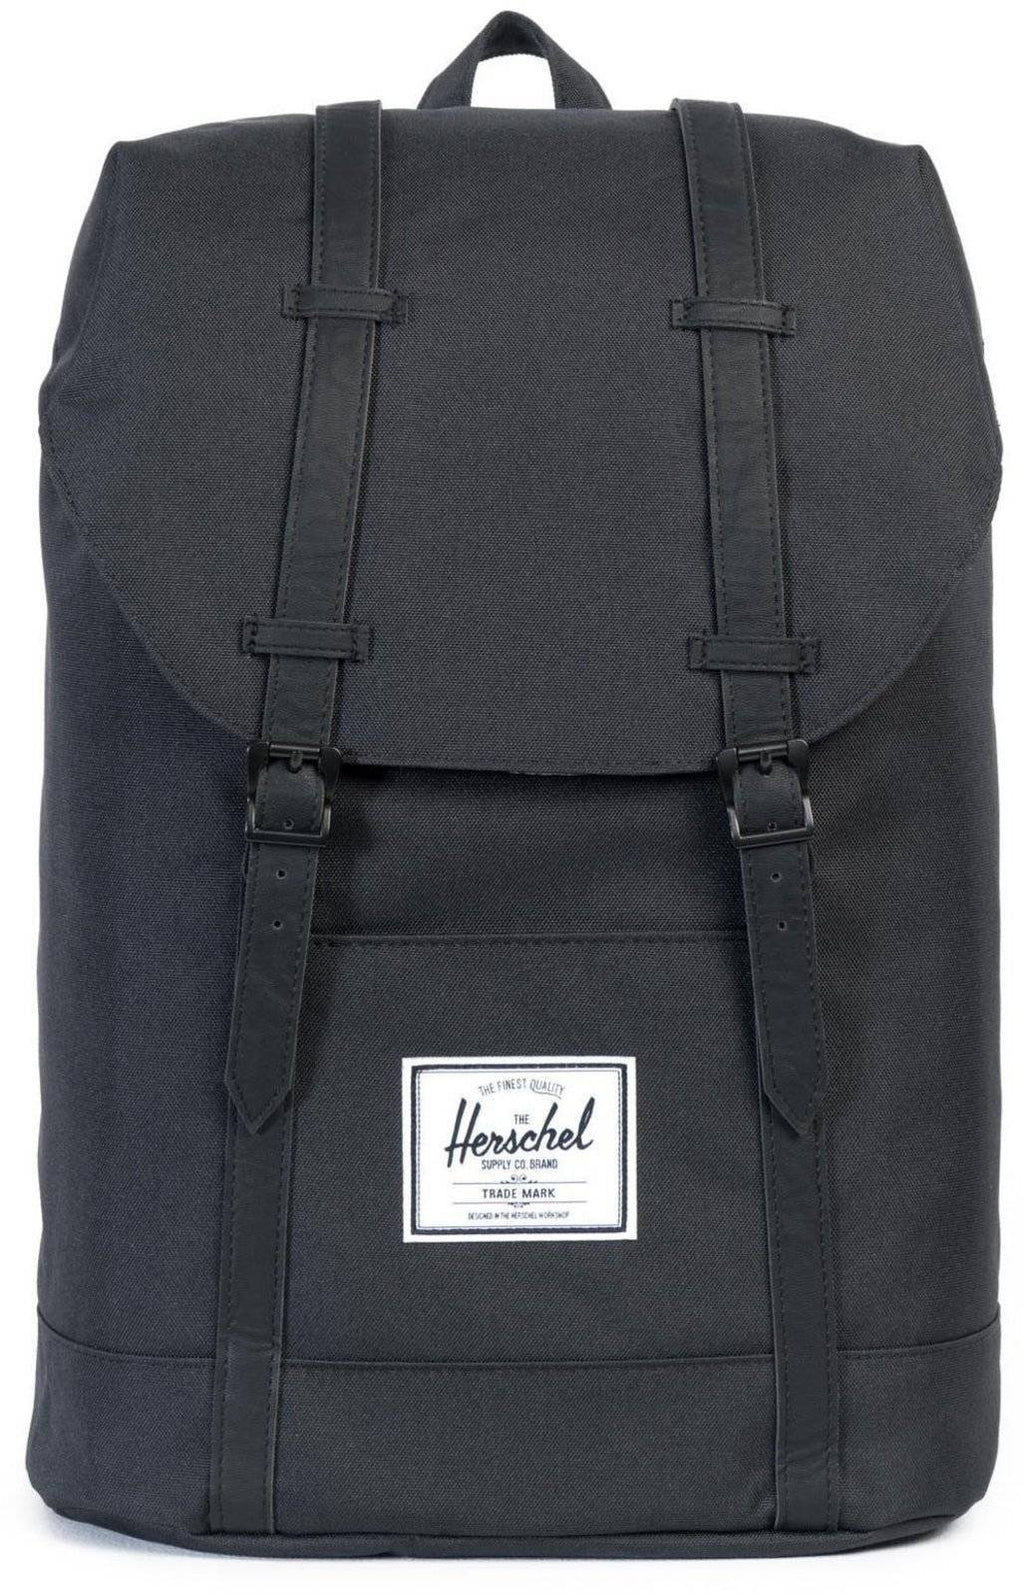 Herschel Supply Co Retreat Straps Backpack Rucksack Bag Black